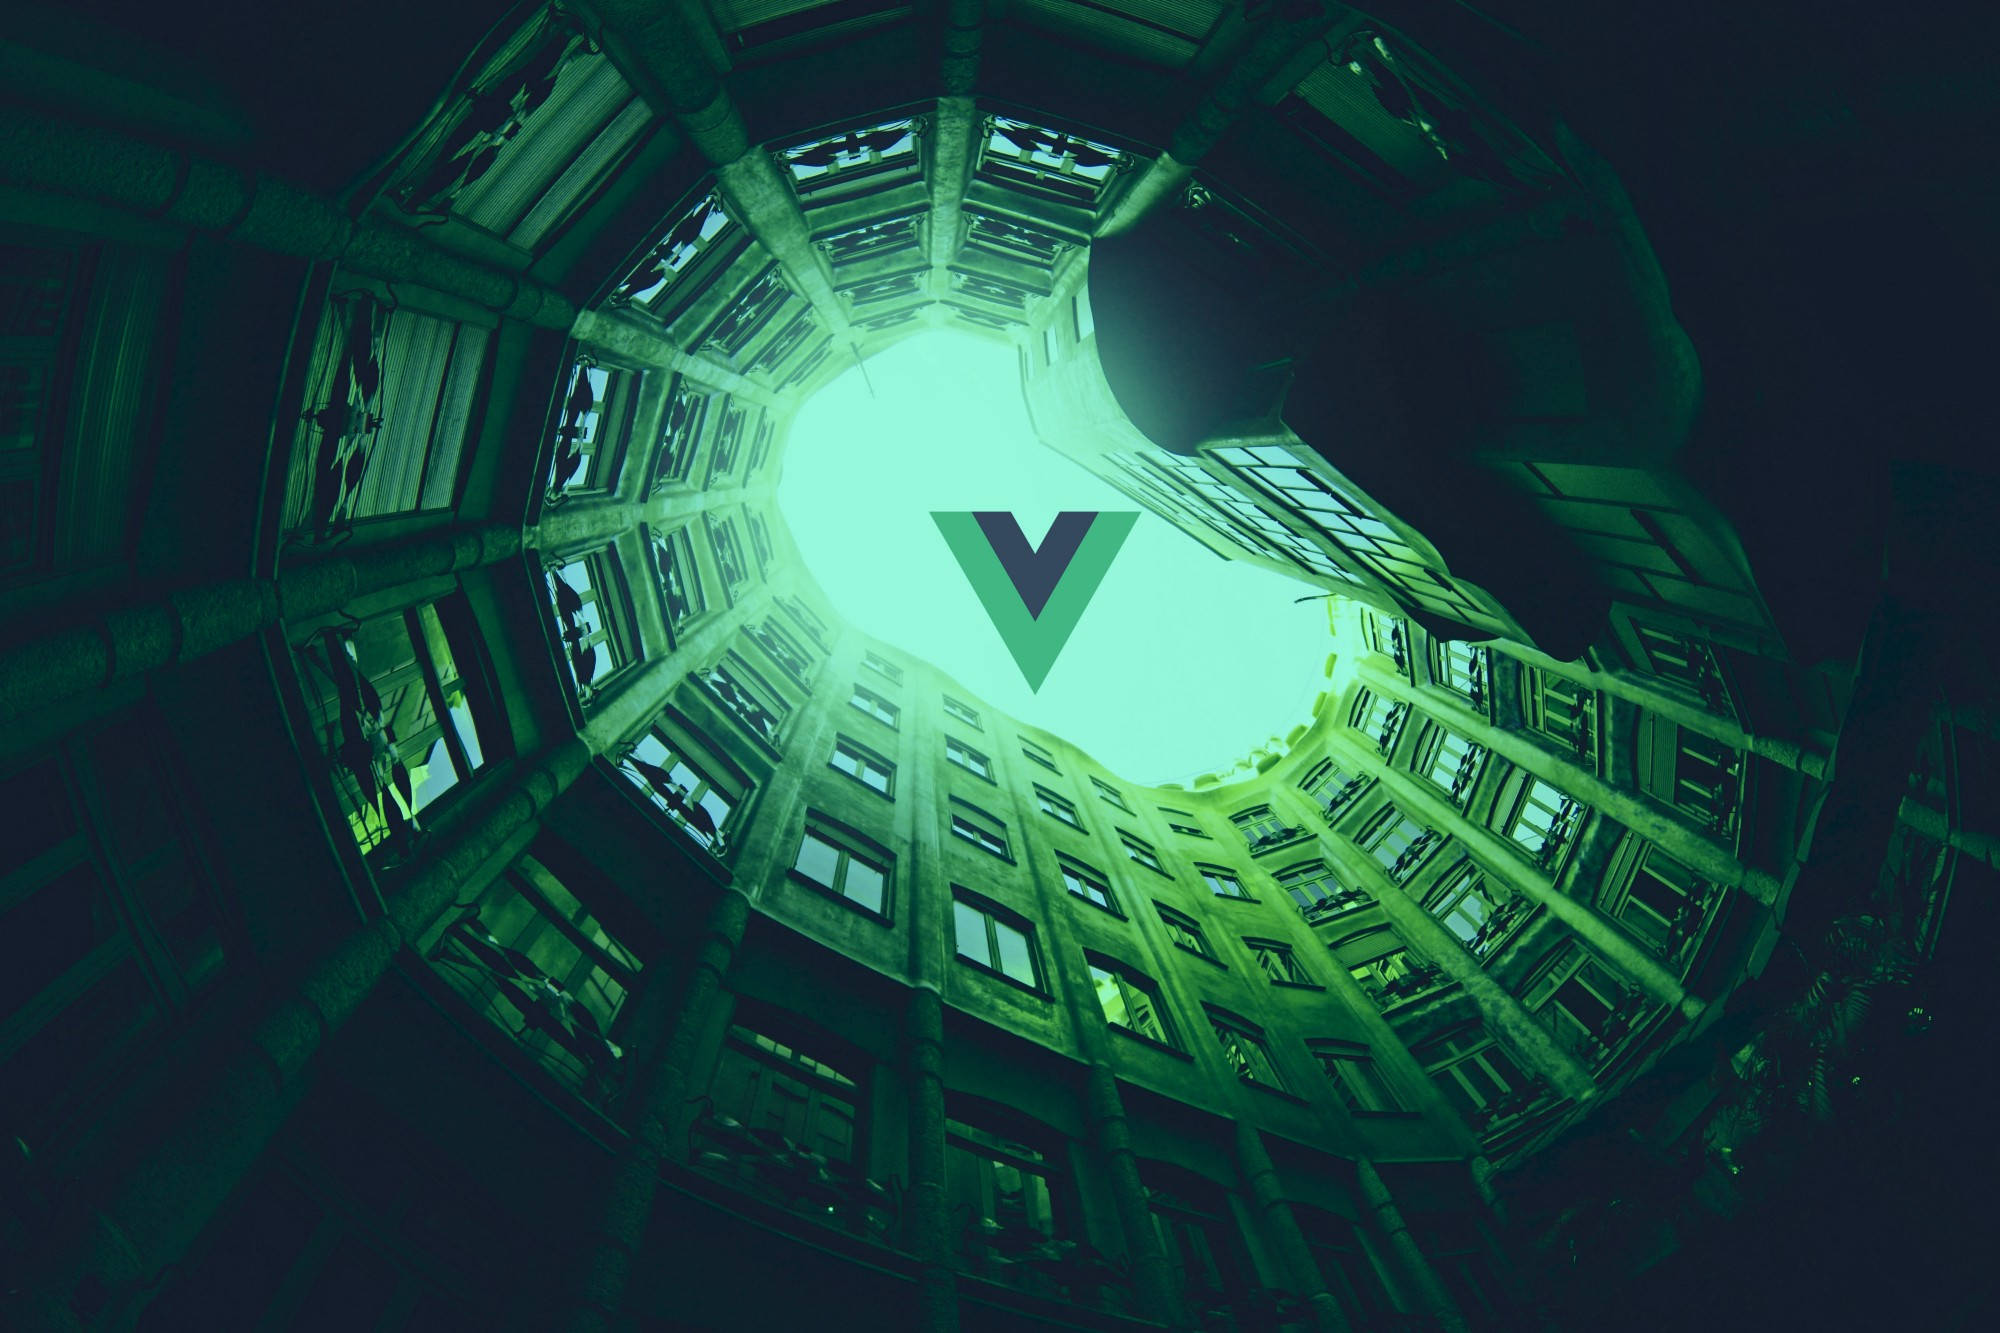 The view from an inner courtyard, enclosed by buildings, themed in Vue's brand colors. In the sky, there thrones the Vue logo